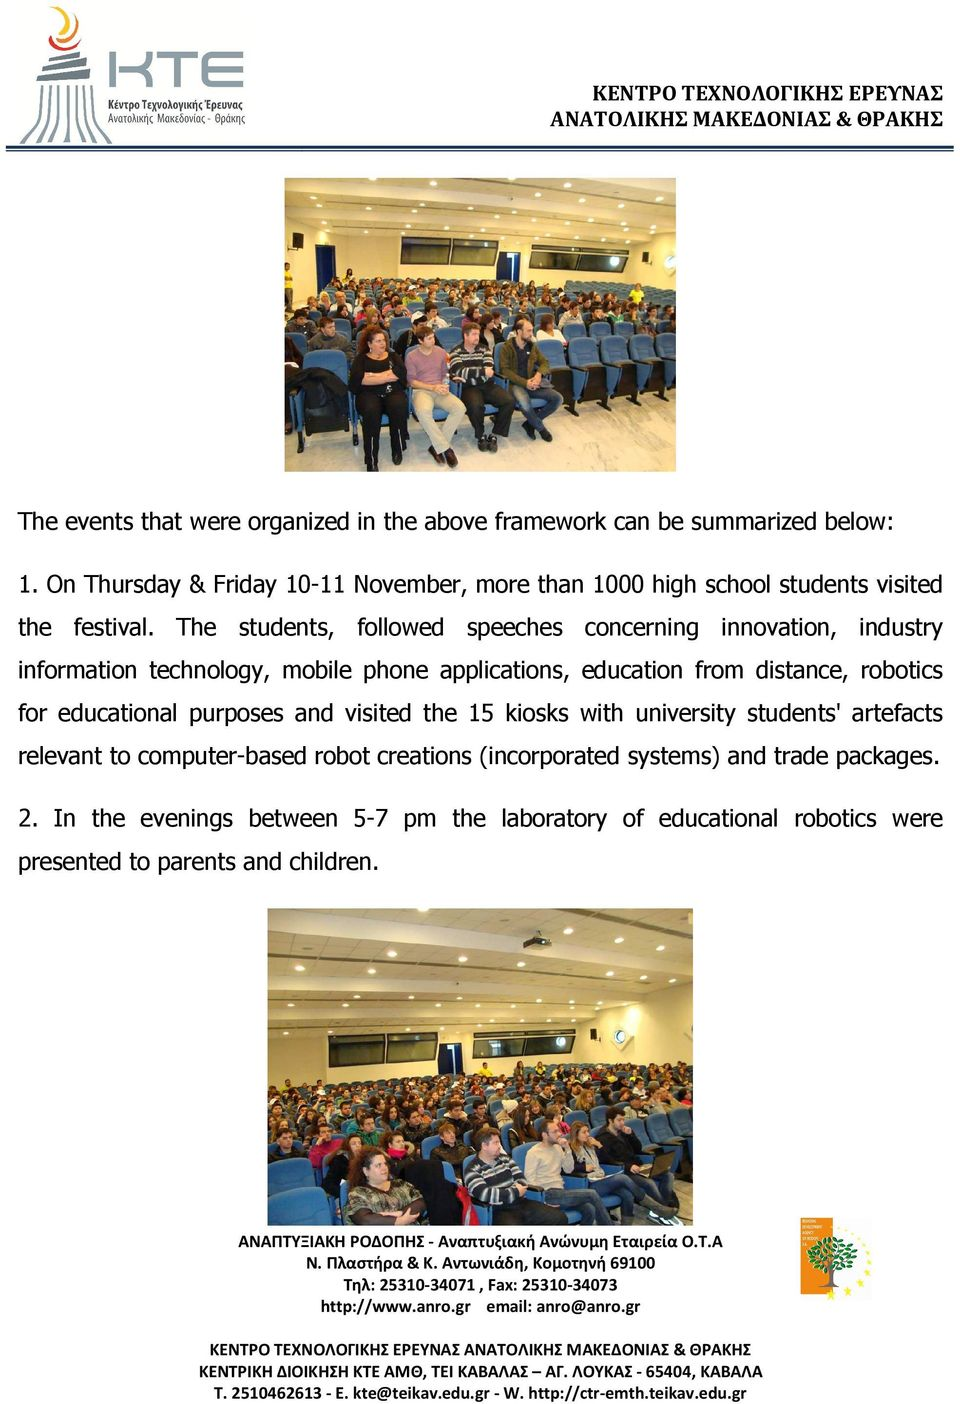 The students, followed speeches concerning innovation, industry information technology, mobile phone applications, education from distance, robotics for